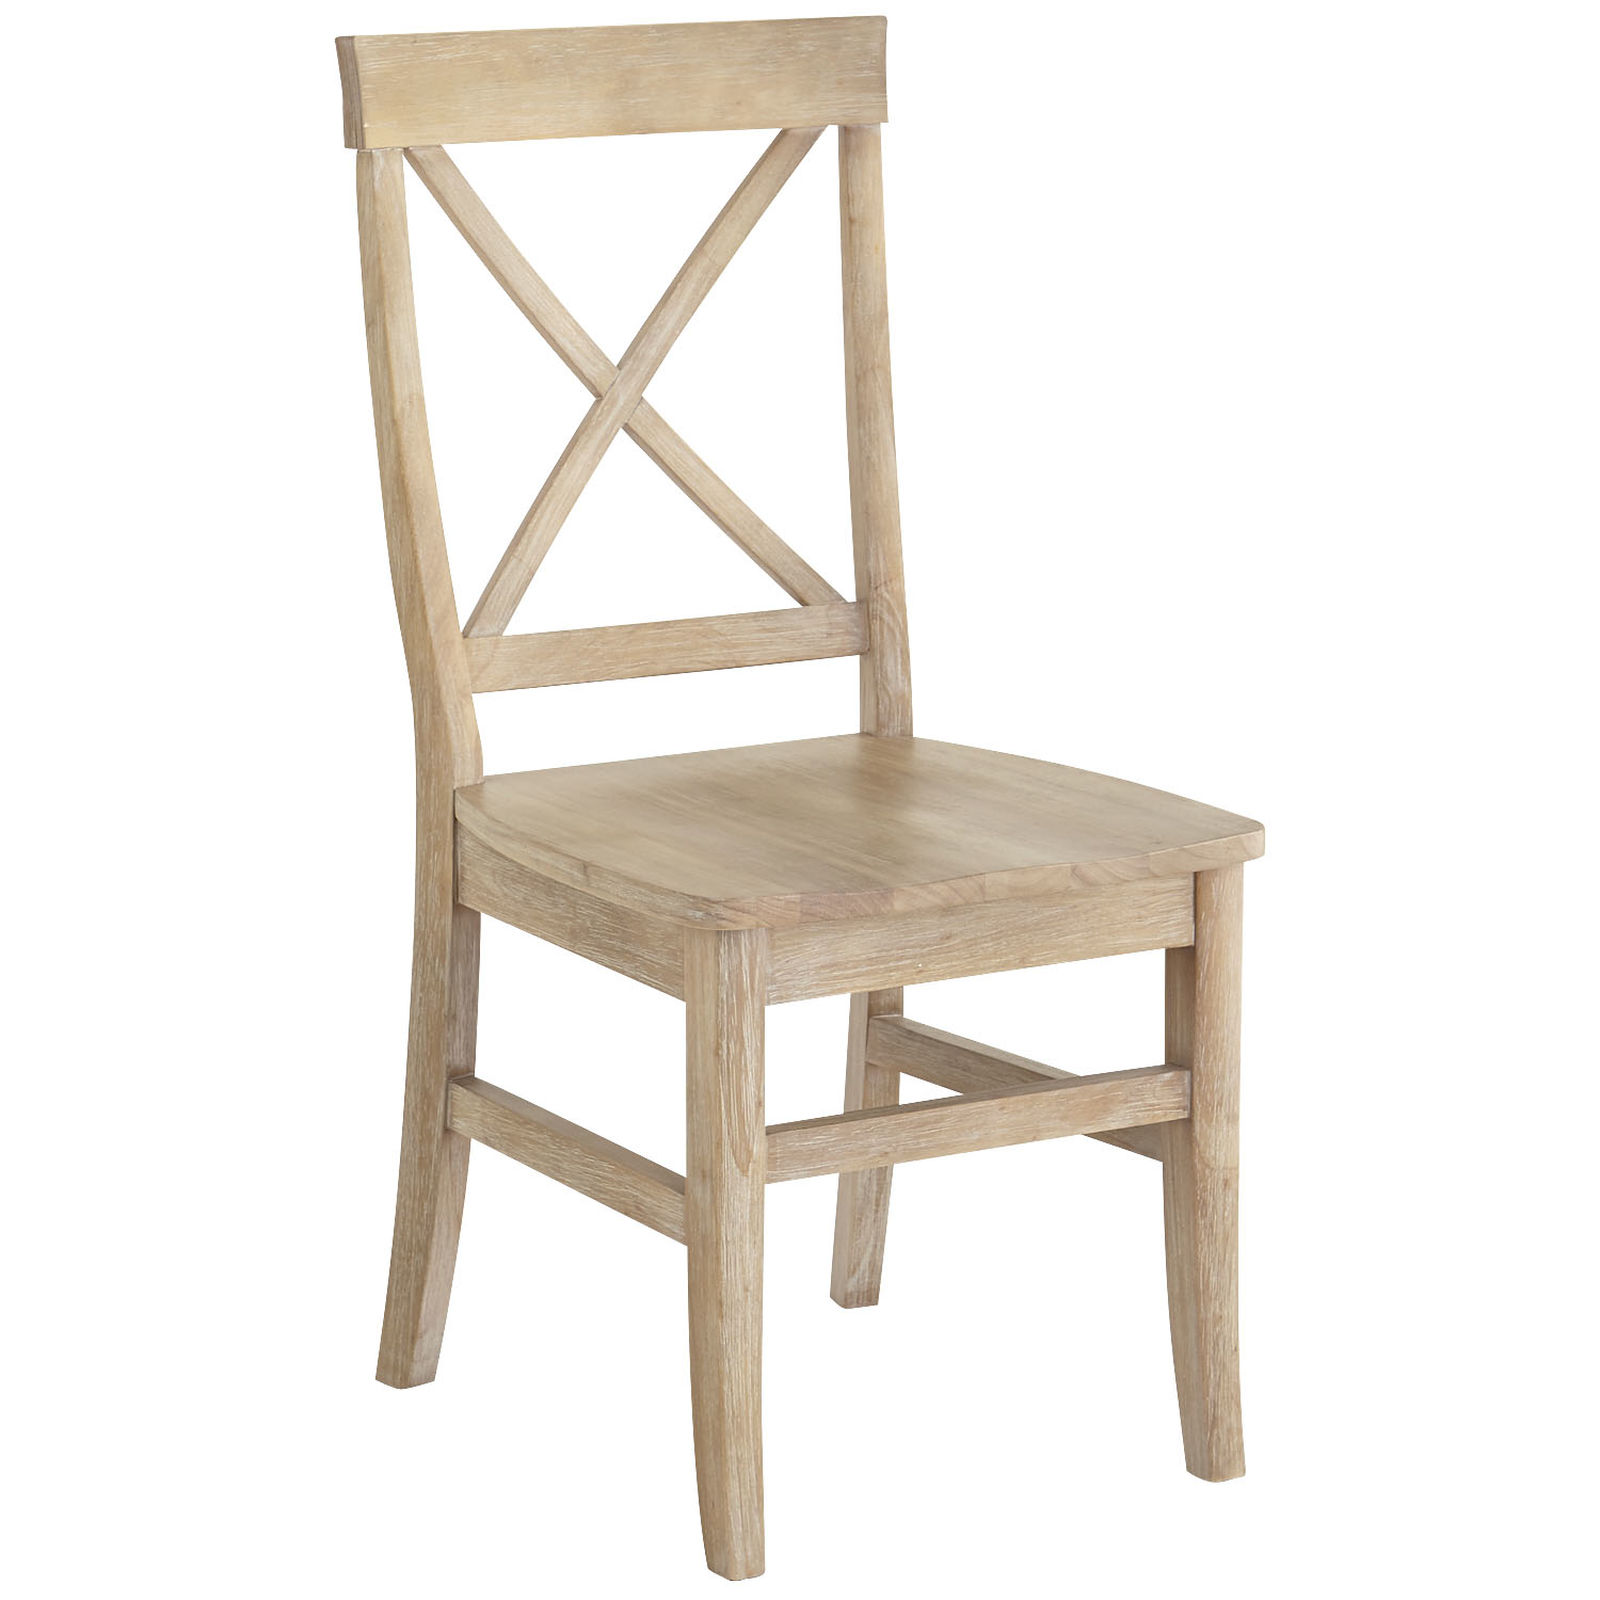 pier 1 dining chairs Pier 1 Dining Chair pier 1 dining chairs